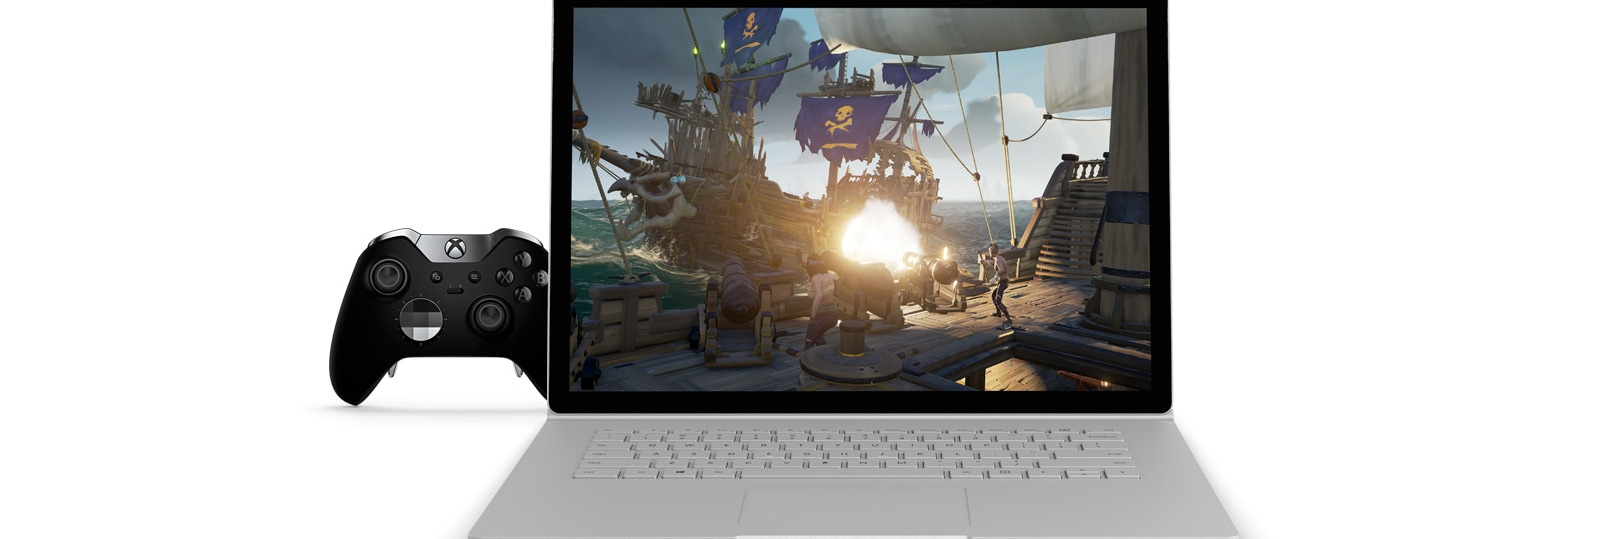 "Gráficos del juego Sea of Thieves en un dispositivo Surface Book 2 de 15"", junto con un Mando Xbox Elite"